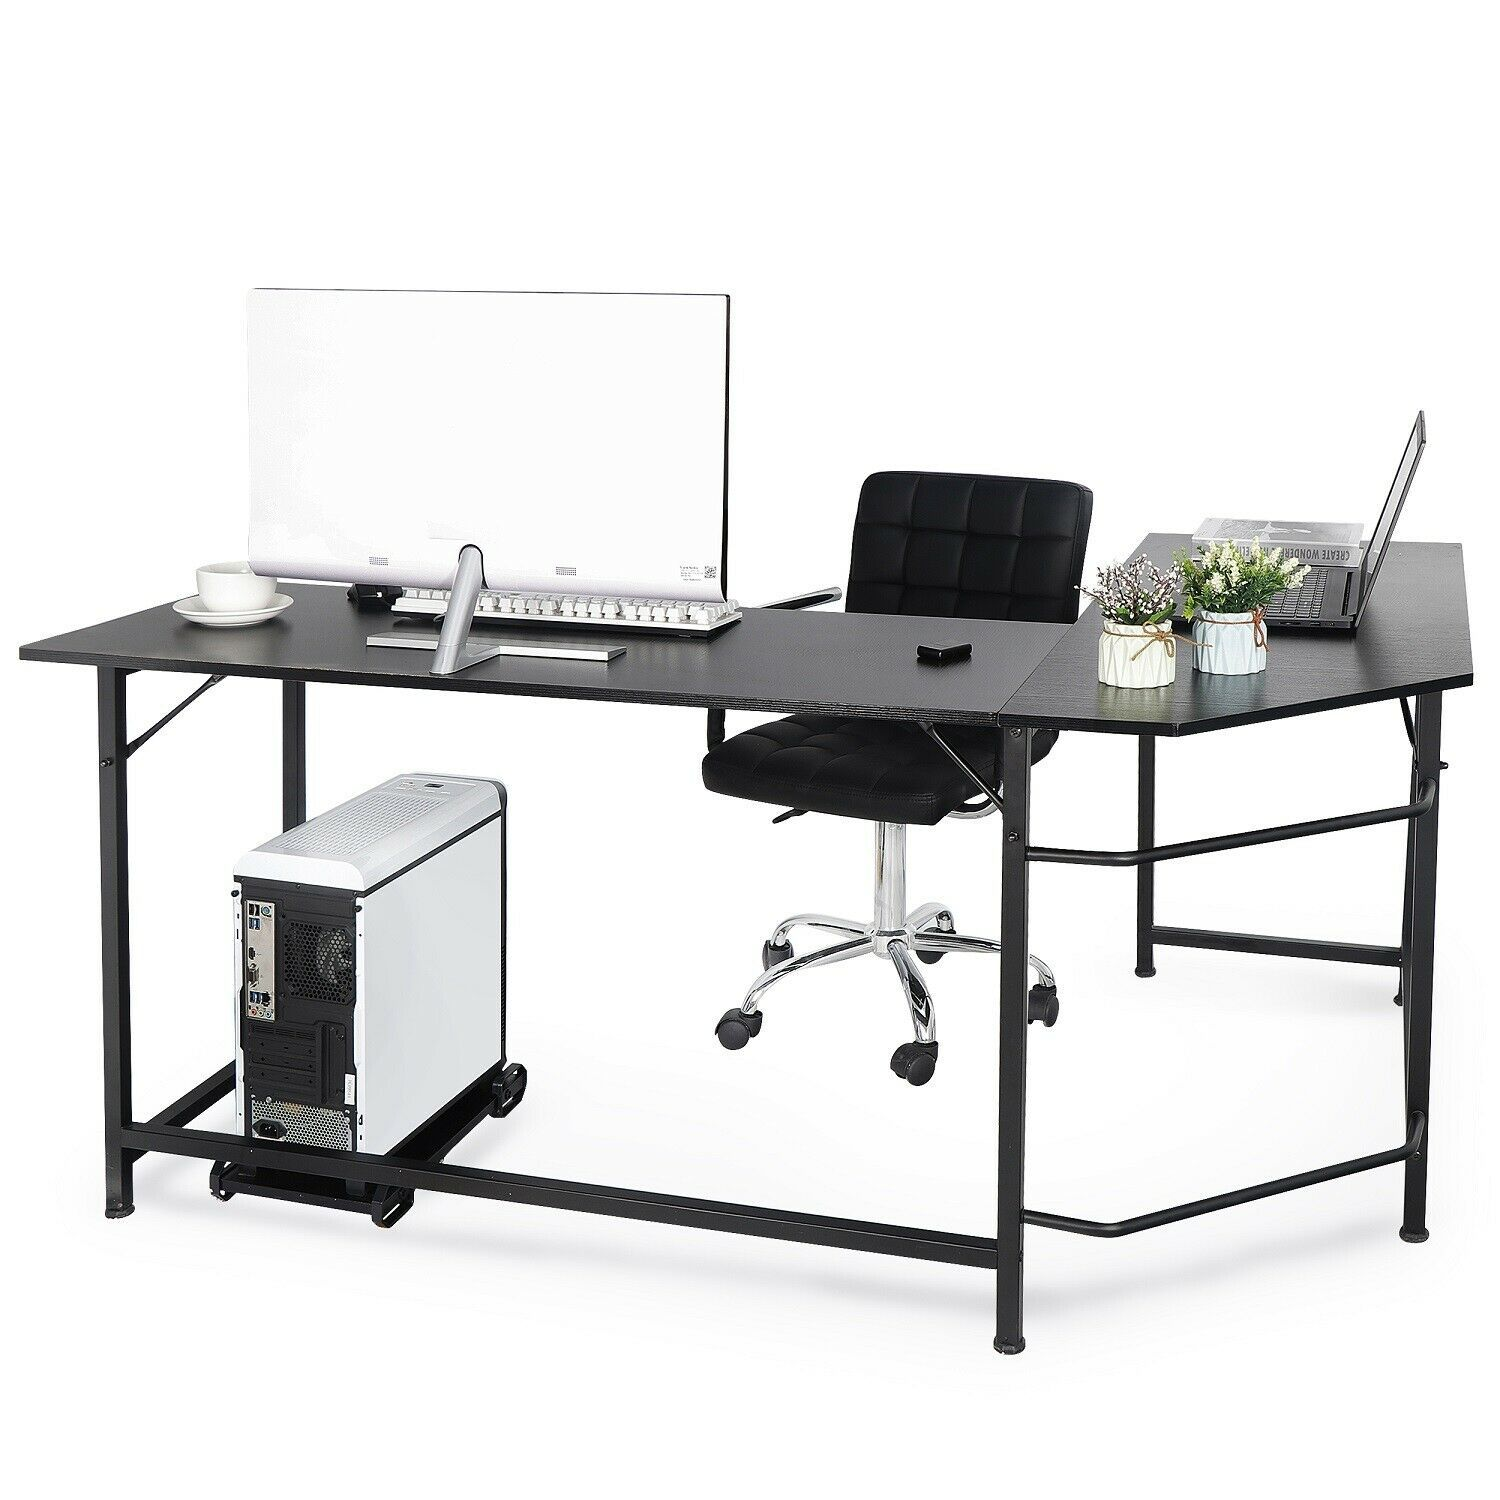 L-Shaped Desk Corner Computer Gaming Laptop Table Workstation Home Office Black